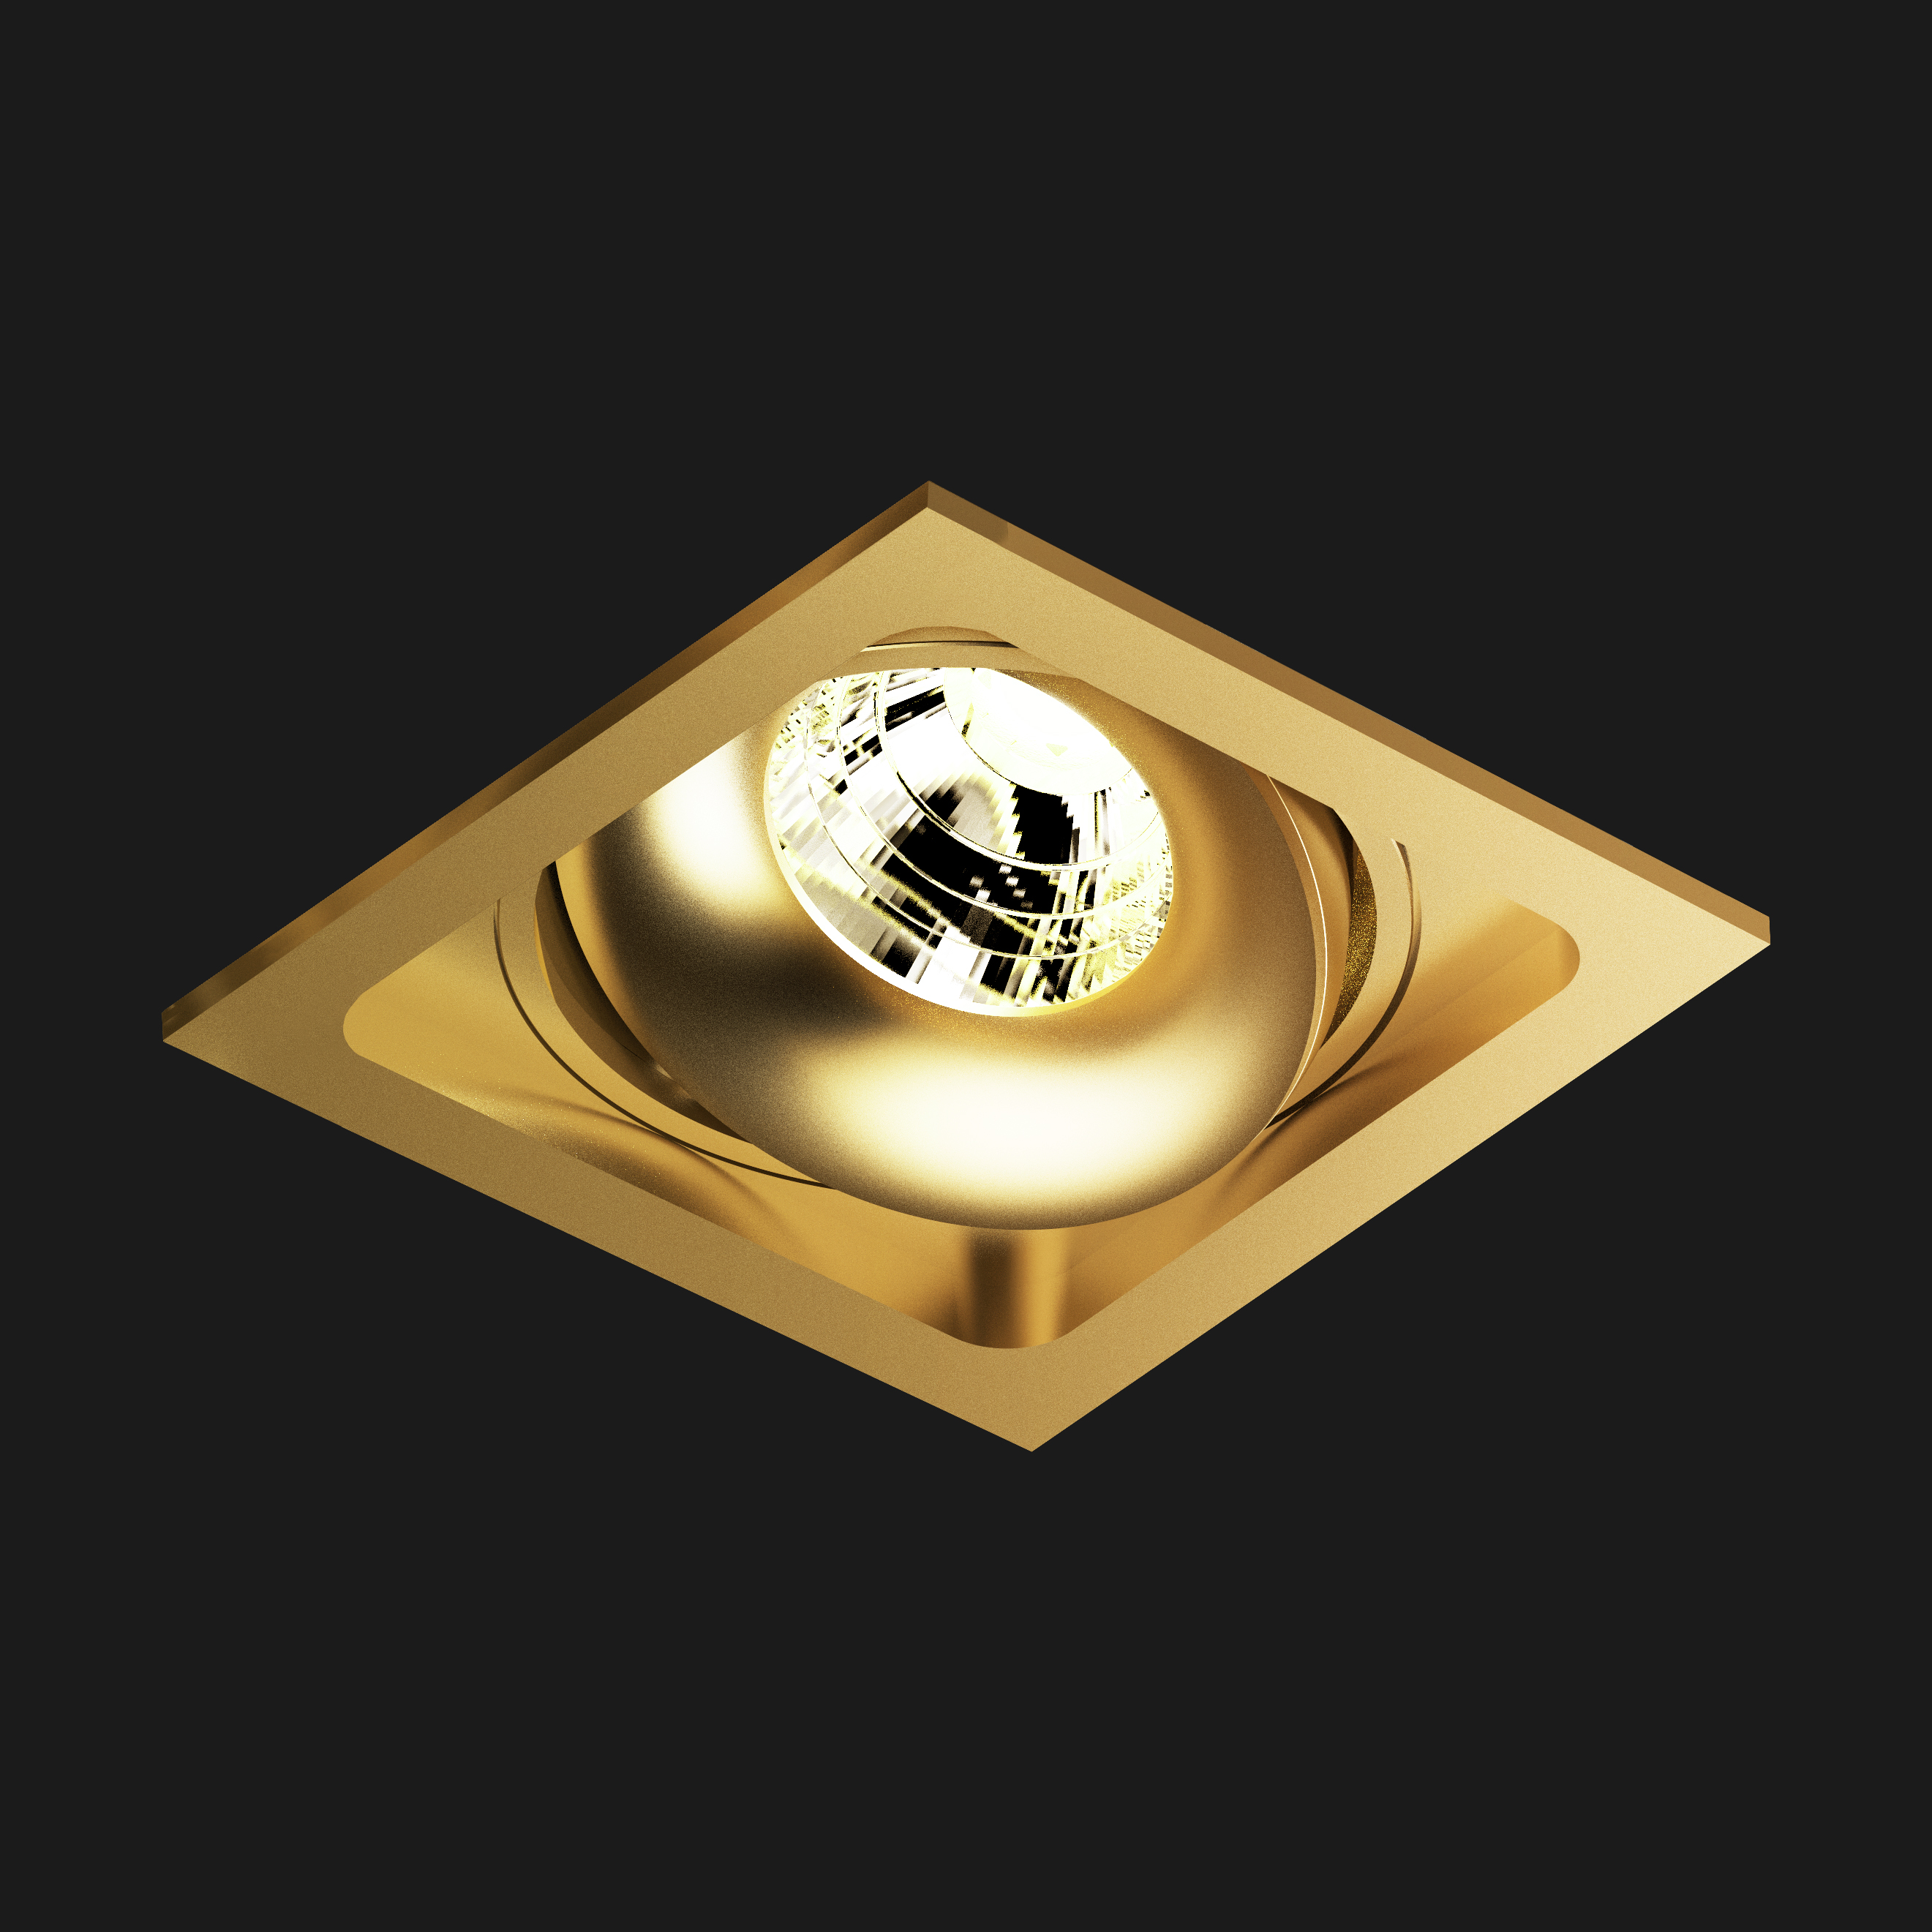 A gold led downlight with black background